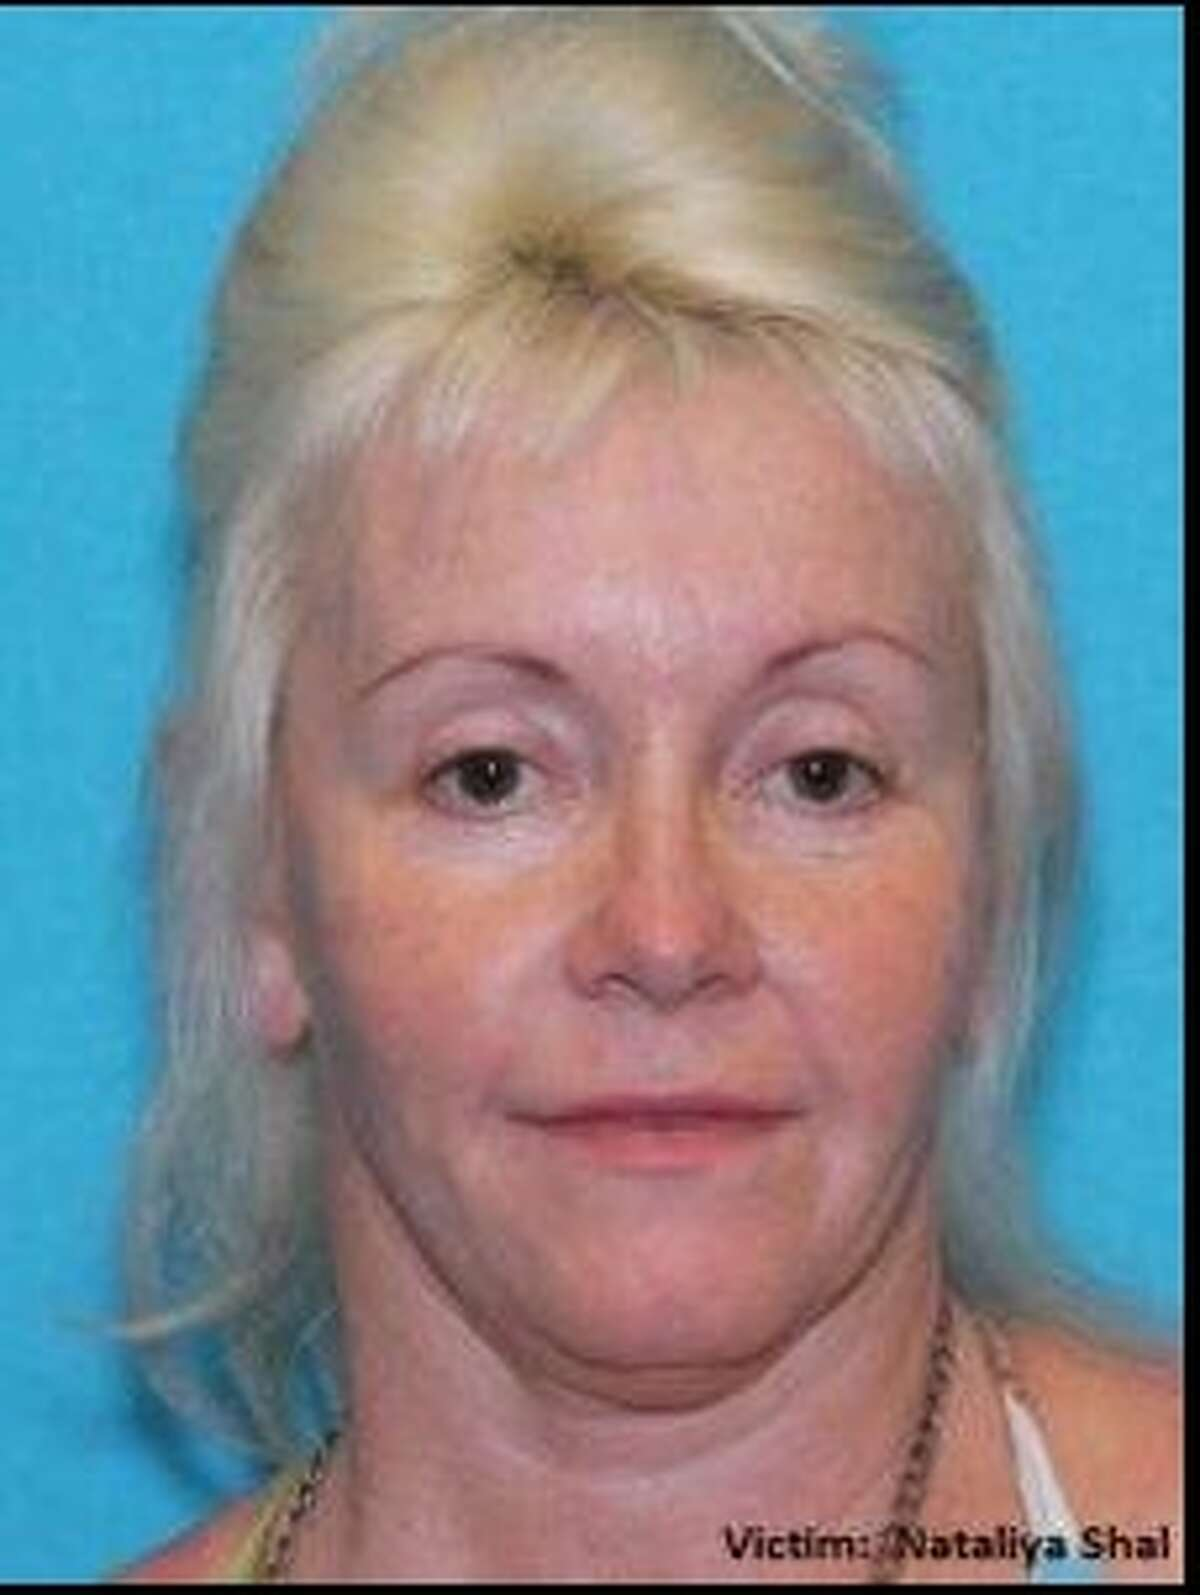 The Baytown Police Department say 50-year-old Nataliya Shal was brutally murdered in her Lakes at Madera apartment Sunday.  Police are offering a $5,000 reward for any information that will help get a suspect arrested and charged.